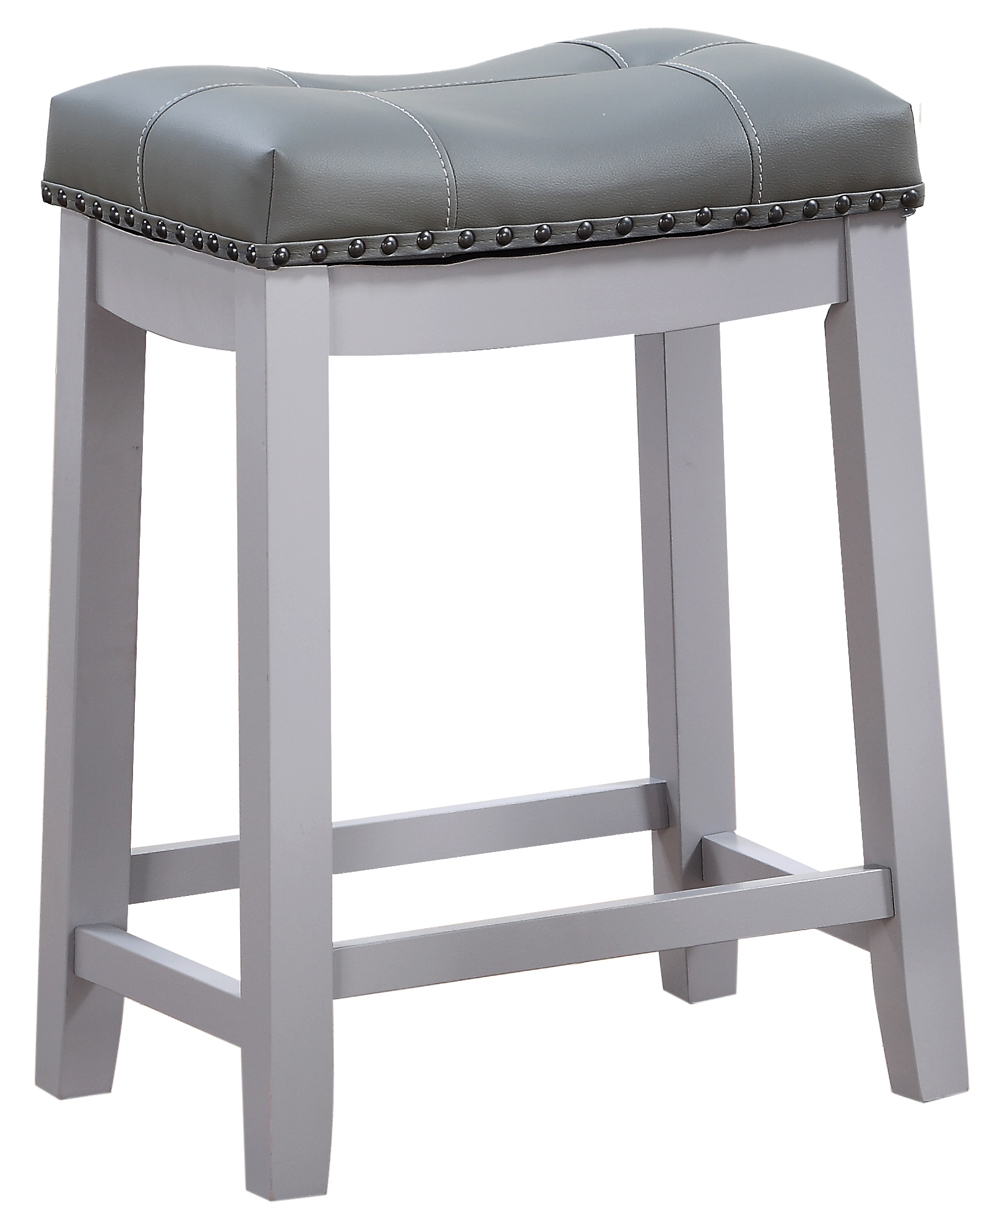 Angel Line Cambridge 24 Quot Padded Saddle Stool Gray W Gray